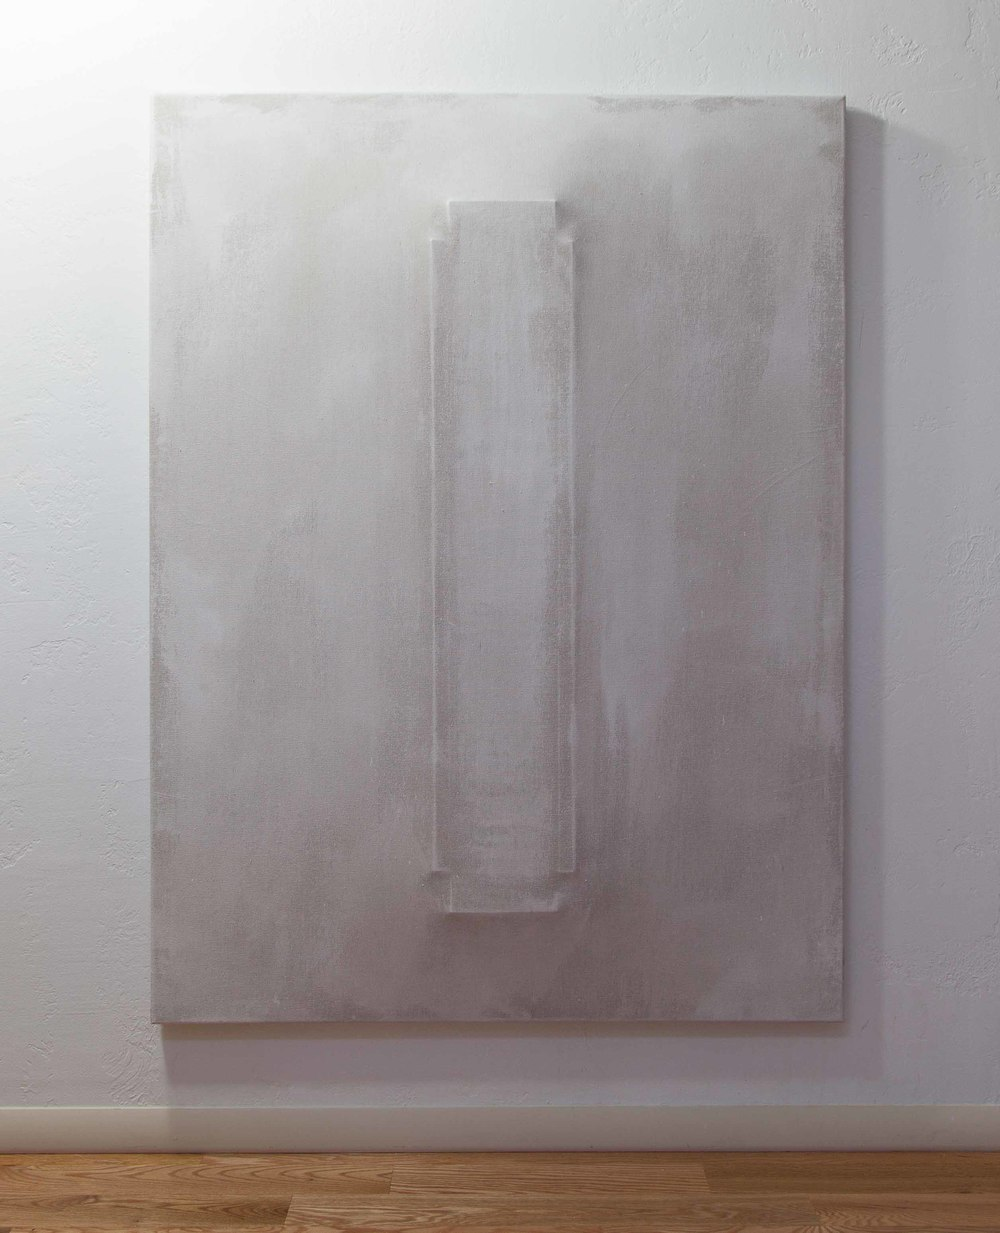 There's a Block in the Void (1270) , 2015, gesso on shaped canvas, installation *